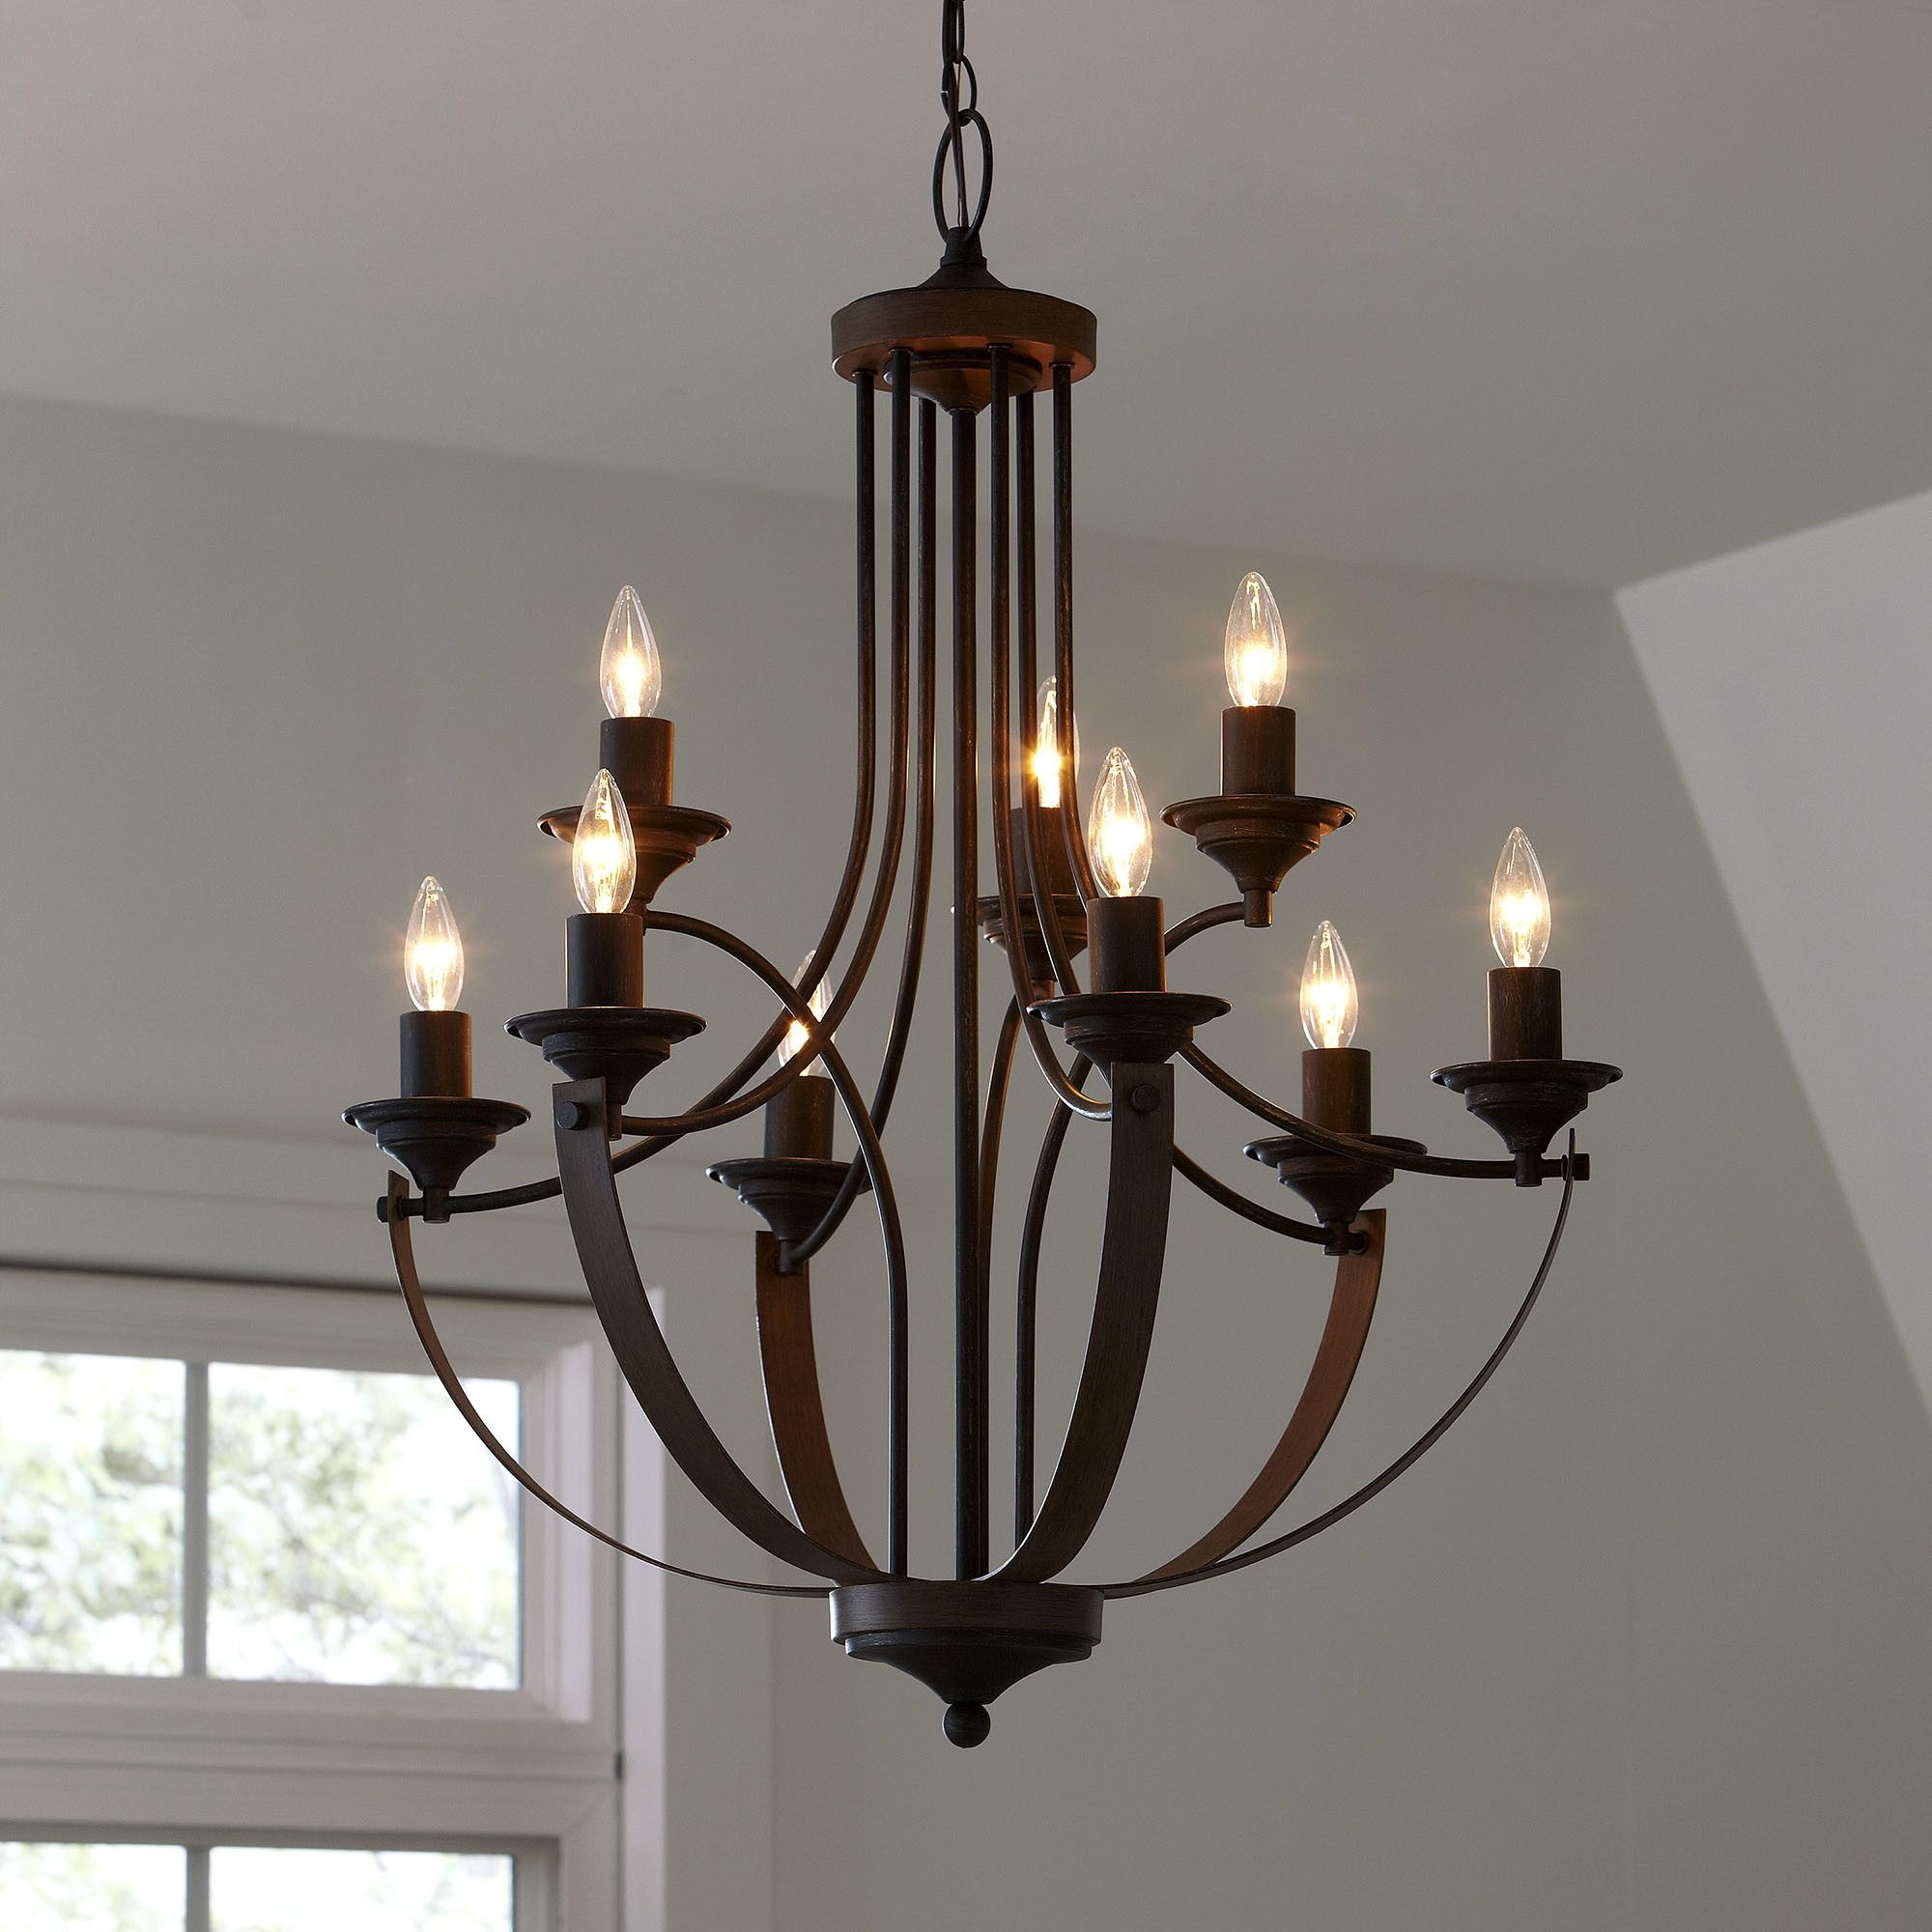 Camilla chandelier for the home pinterest camilla chandeliers camilla chandelier aloadofball Image collections